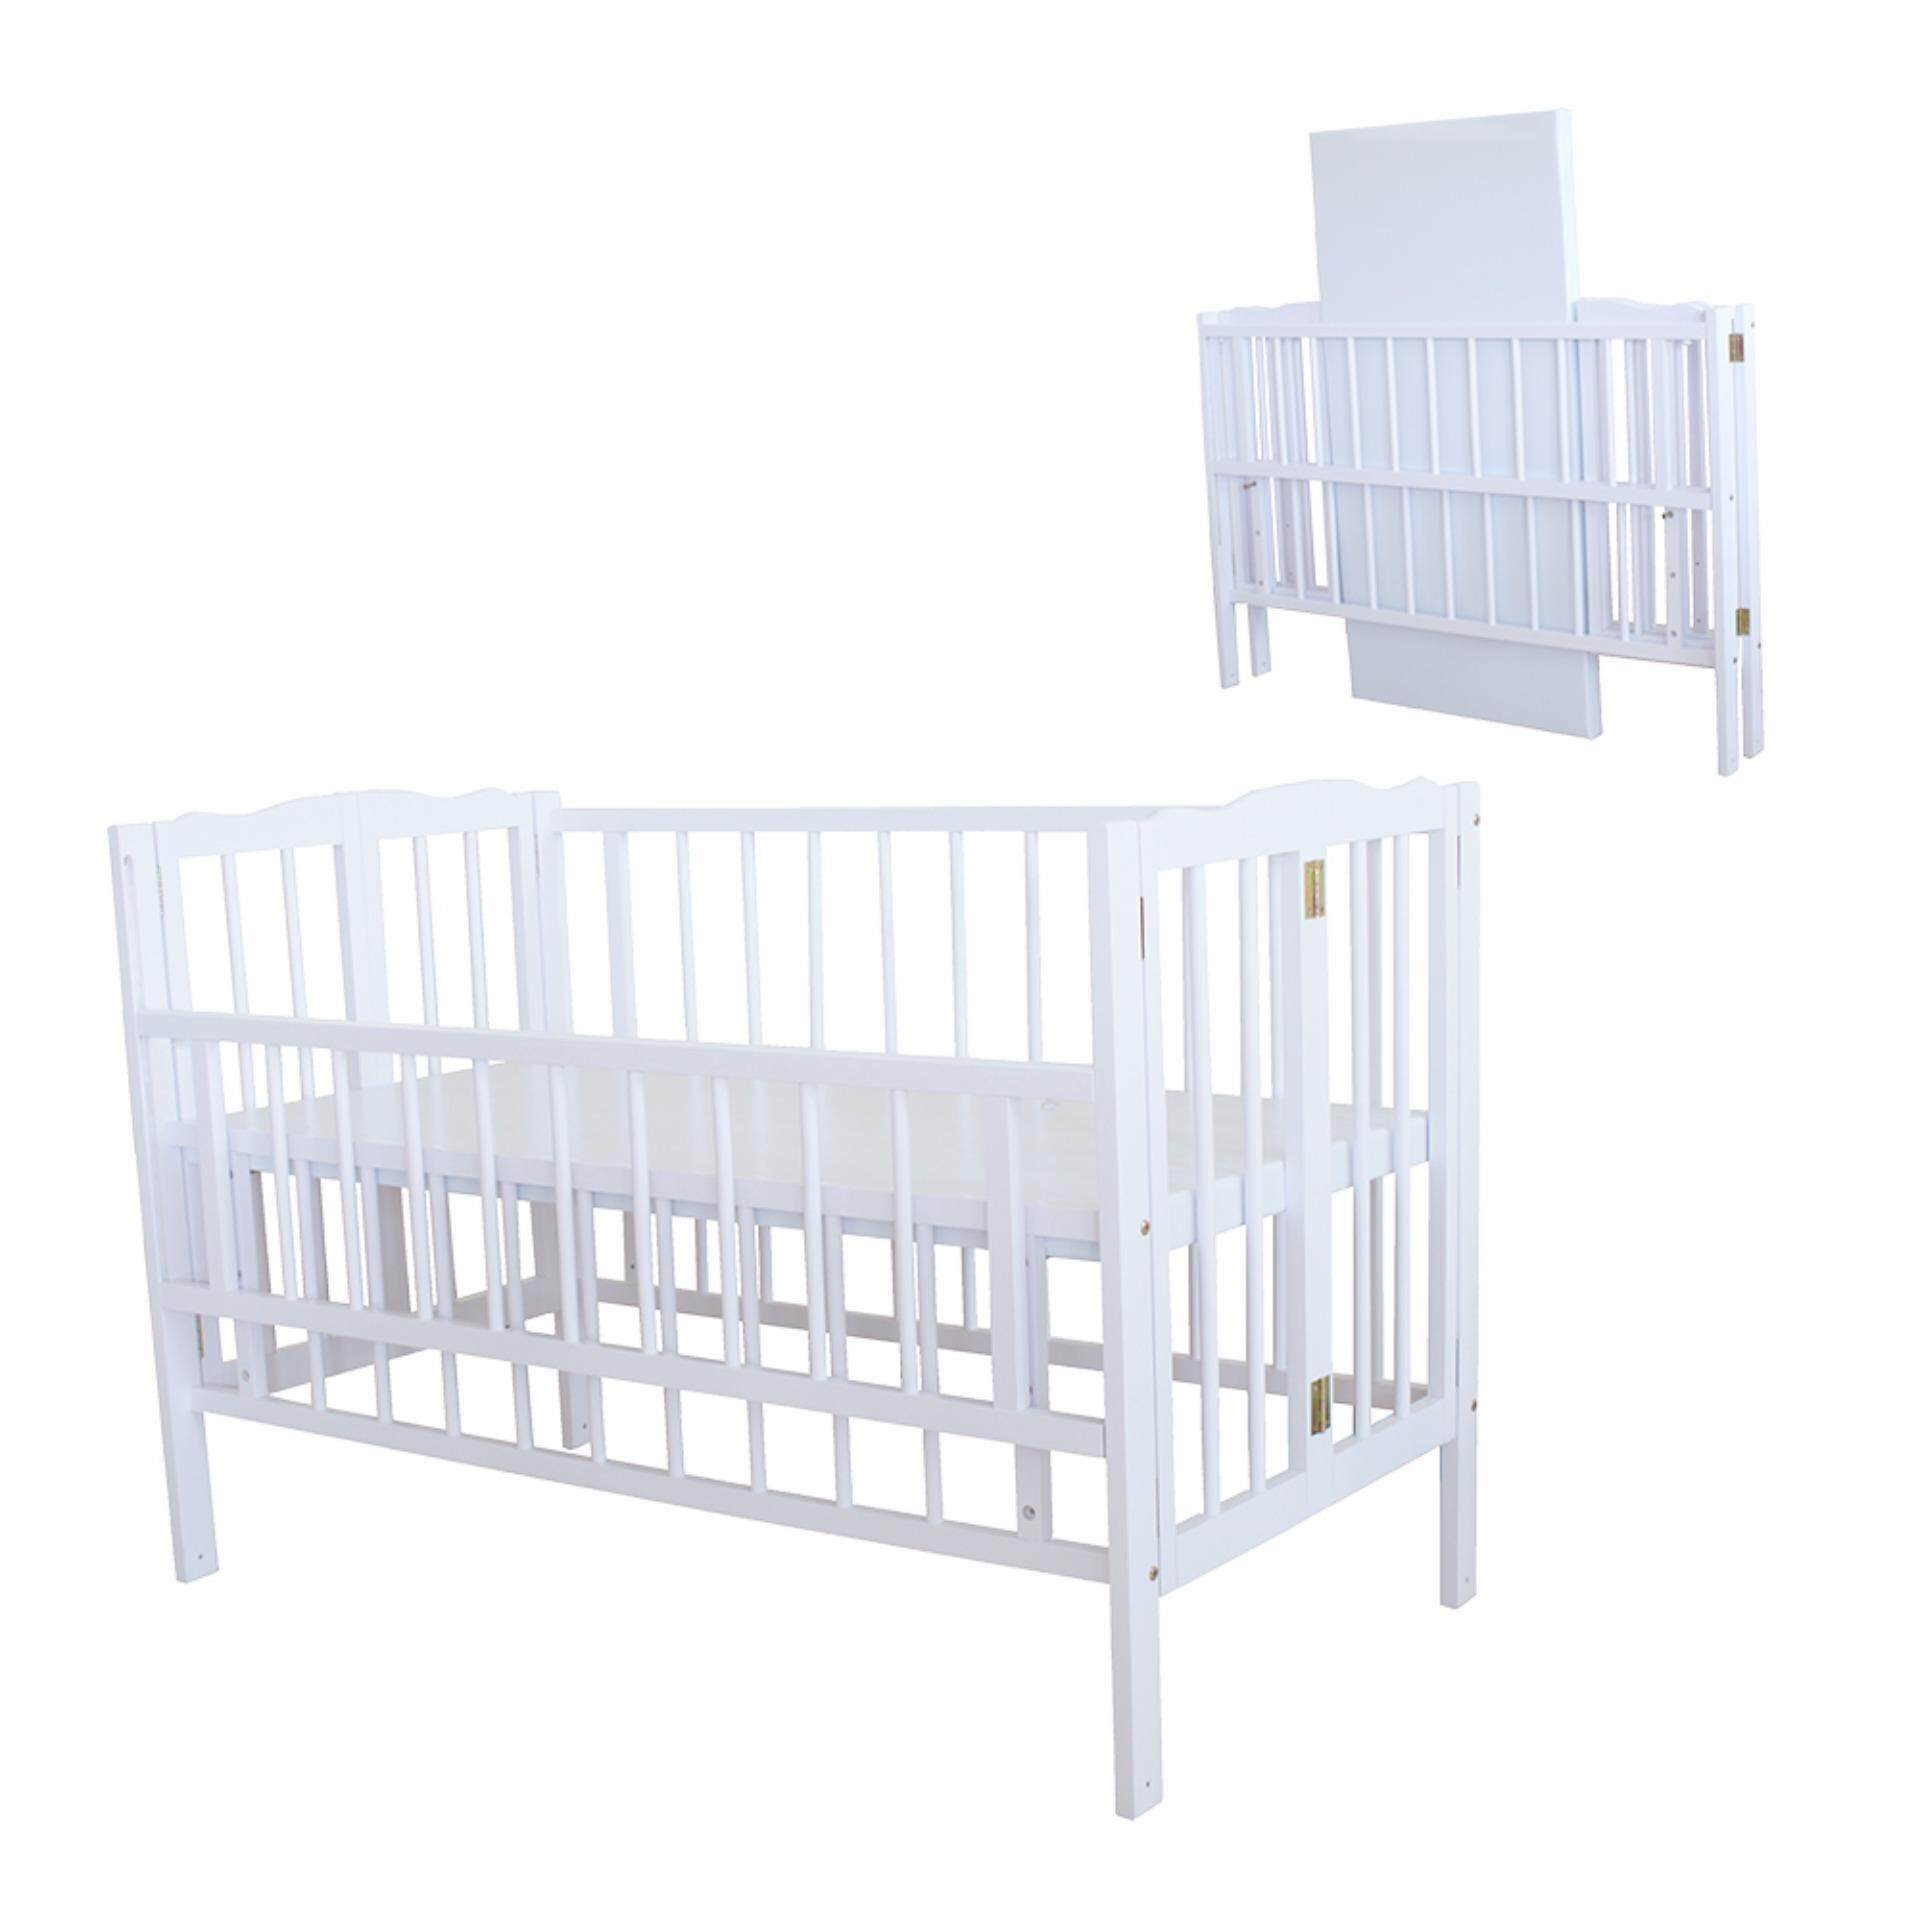 Baby bed malaysia - Royalcot R295 Baby Cot White Off Foldable Cot